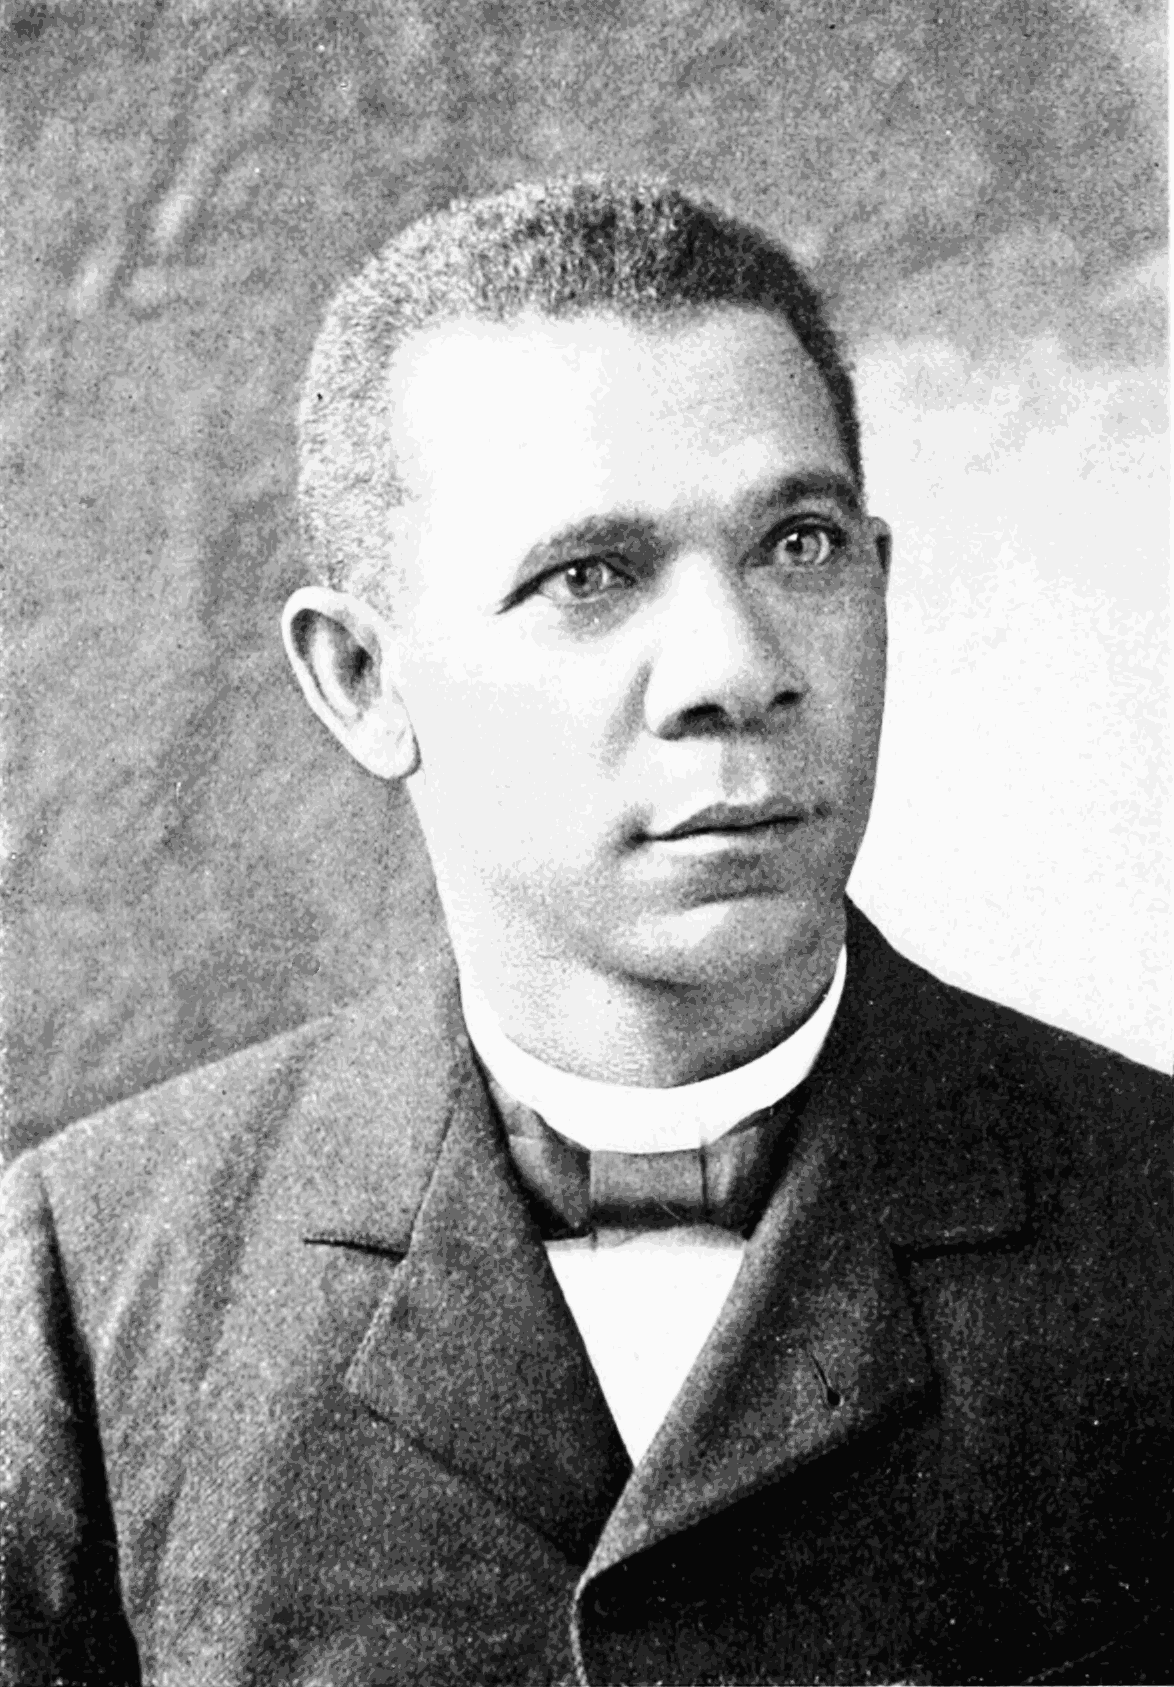 file psm v d booker t washington png file psm v55 d614 booker t washington png